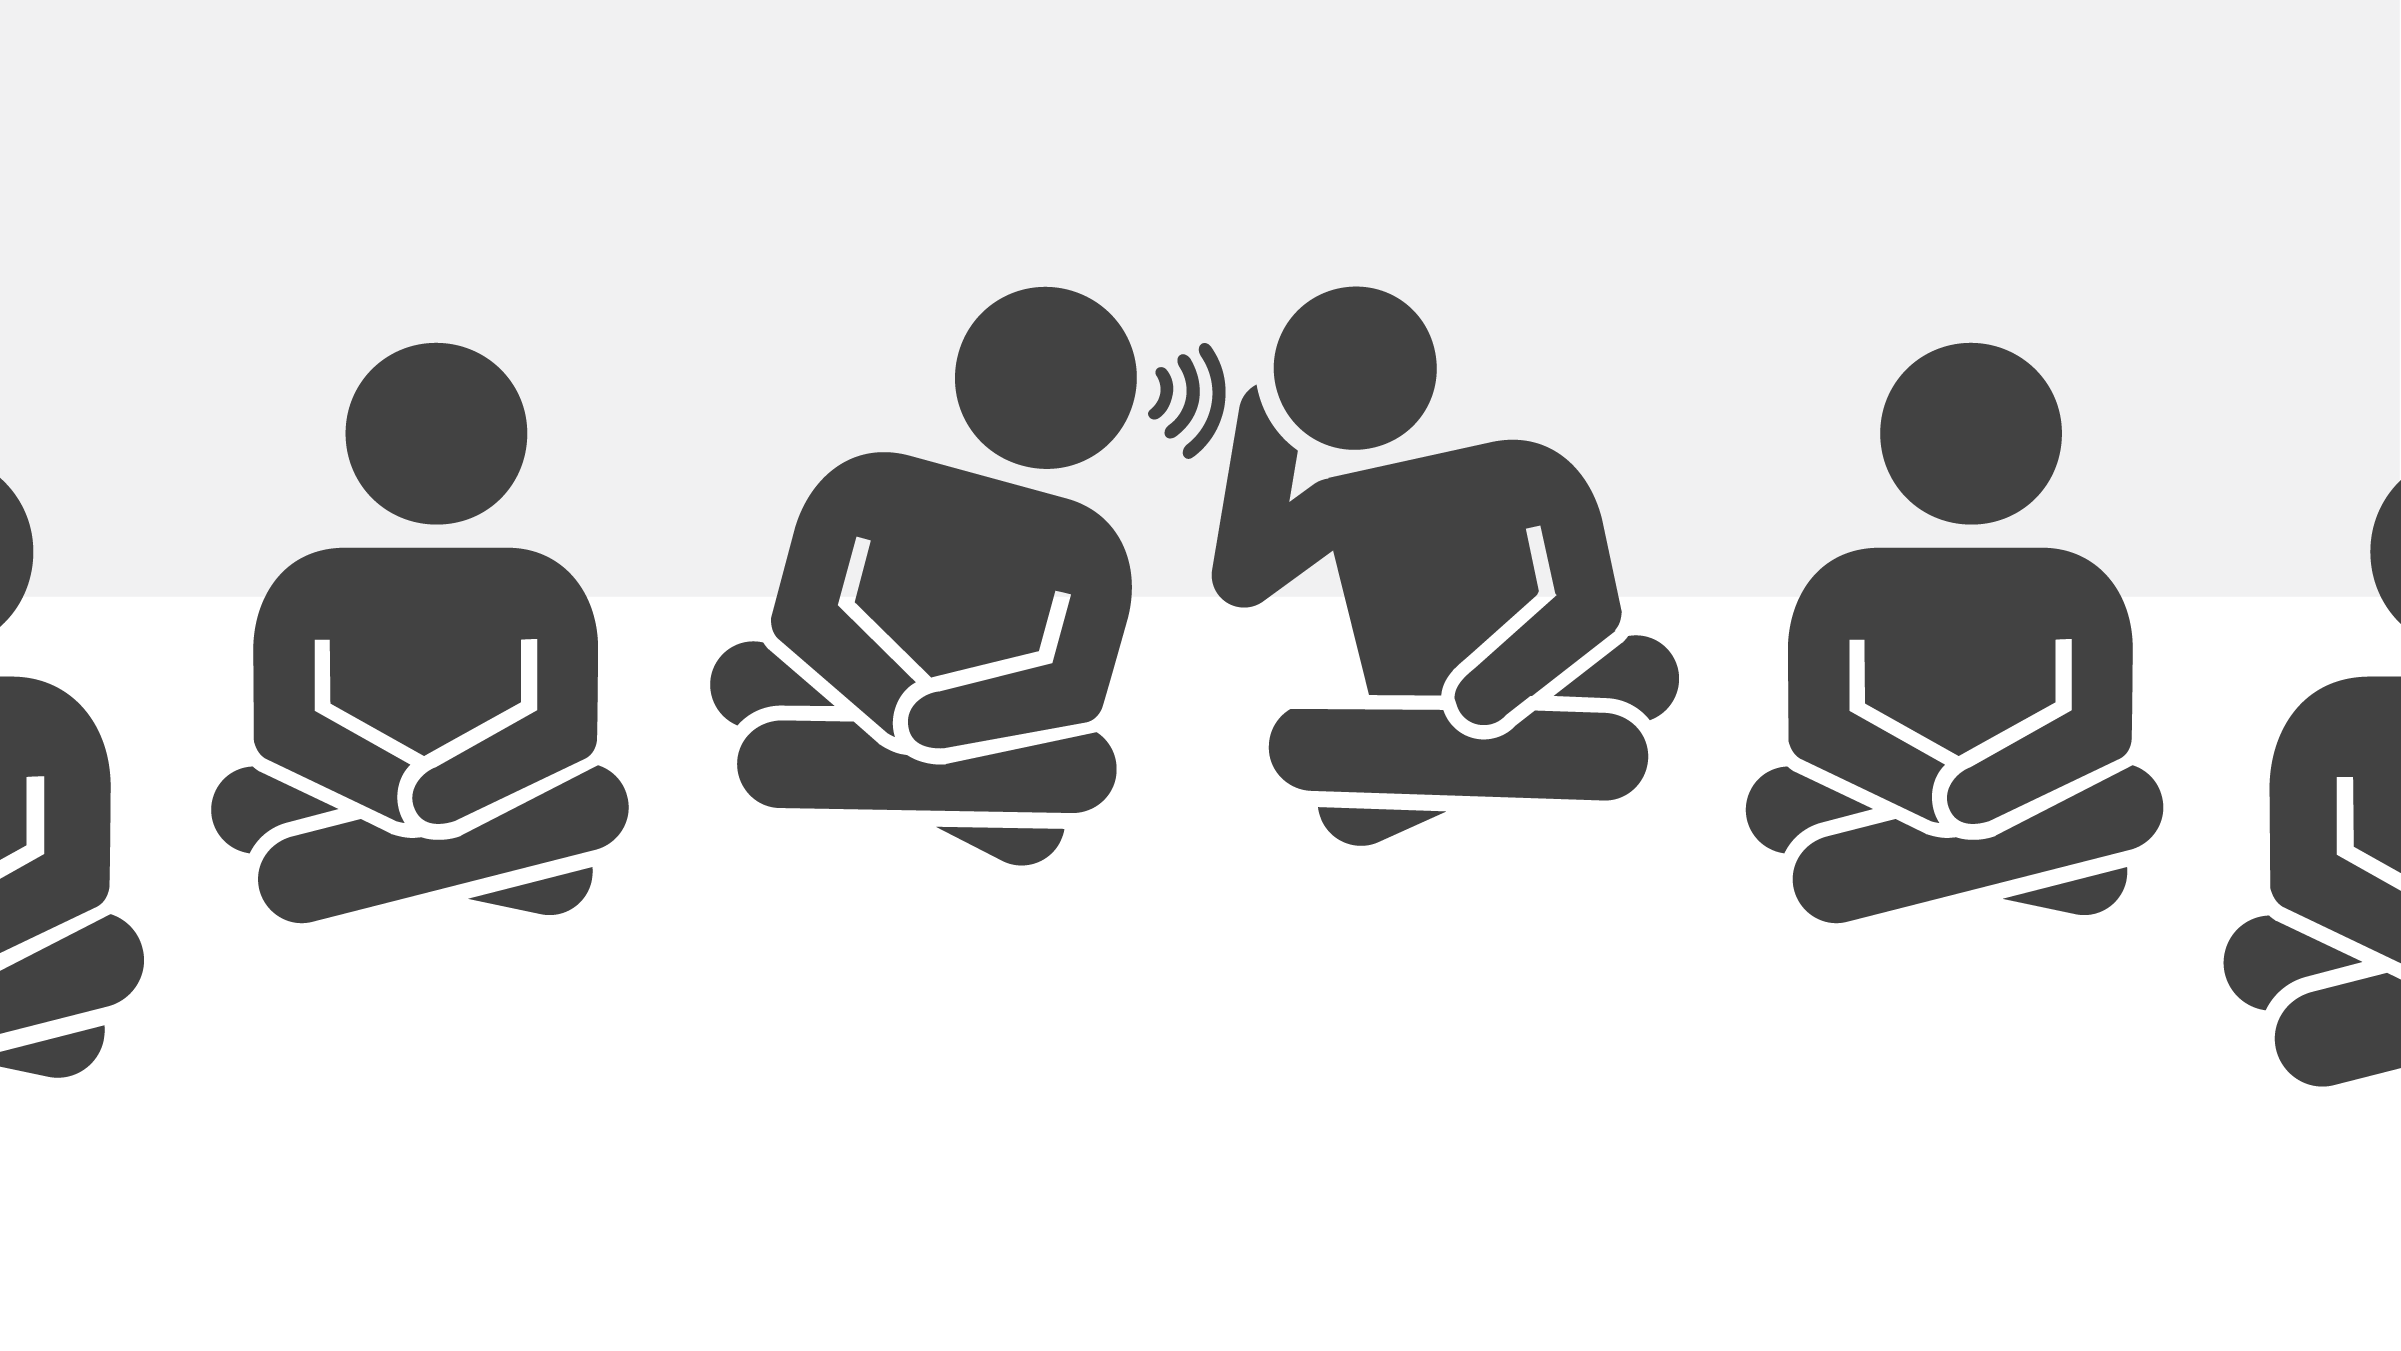 png black and white library Chinese whispers burr s. Whisper clipart telephone game